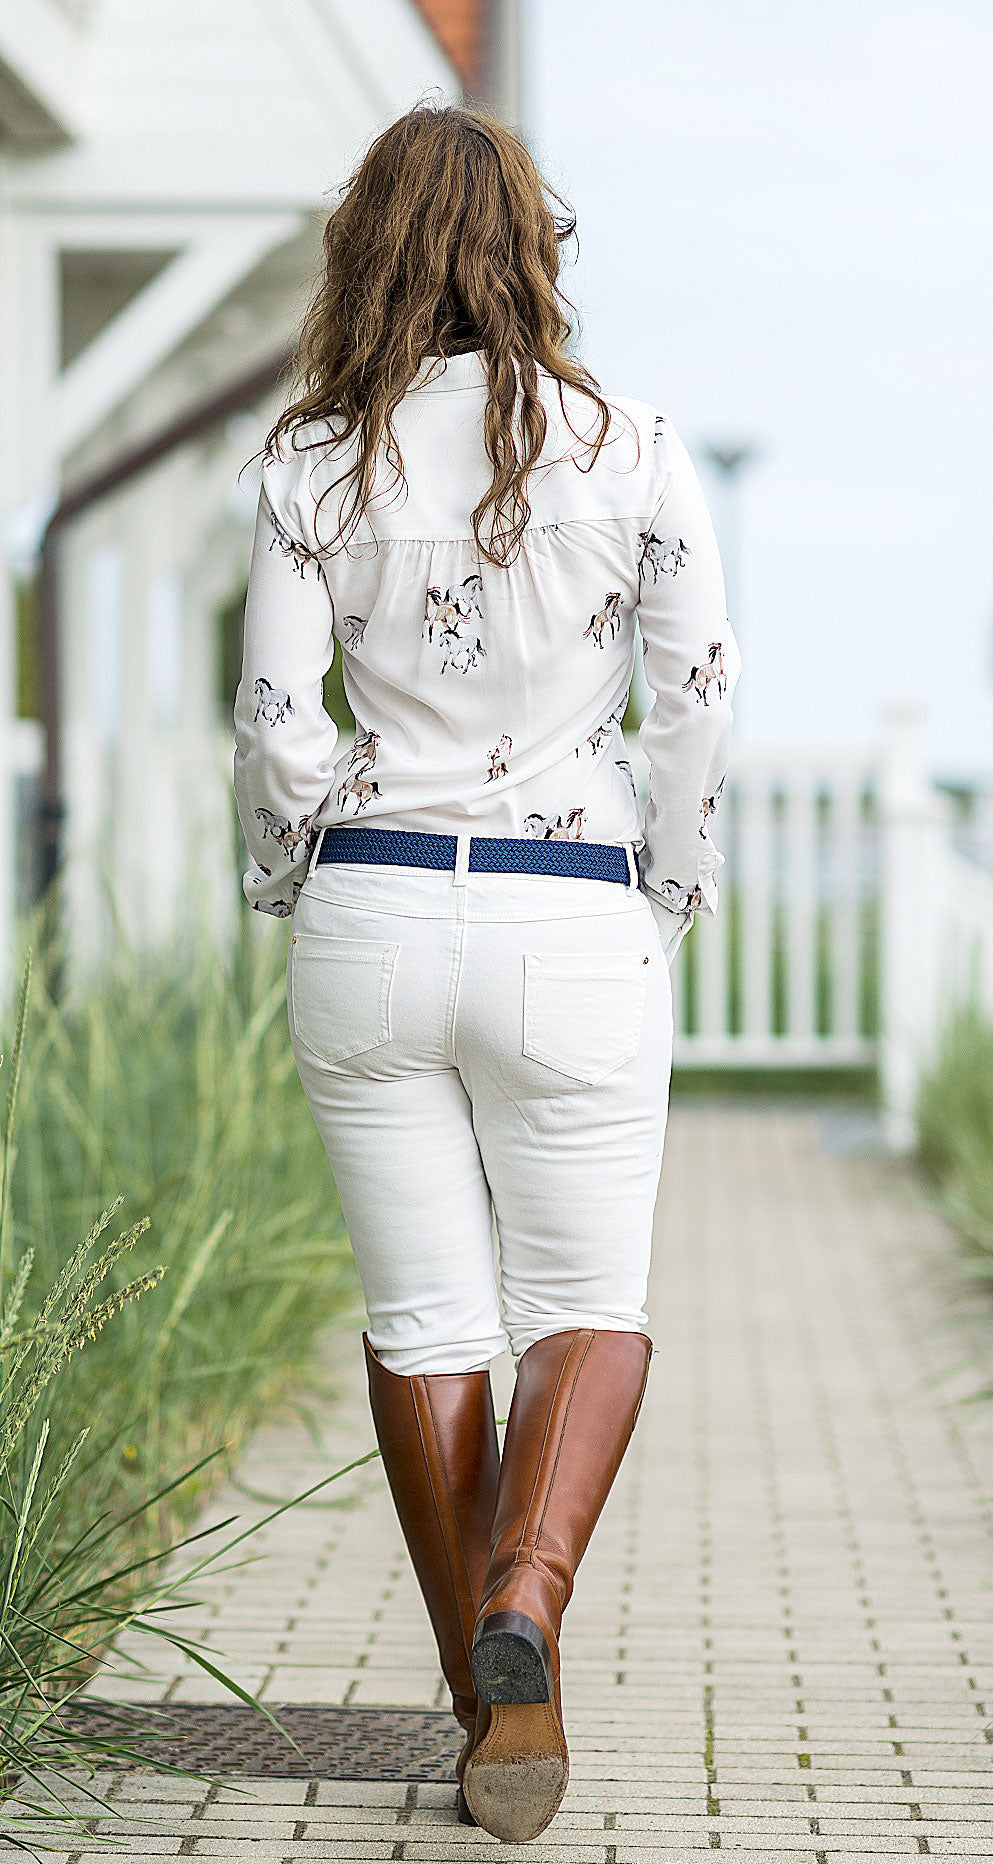 wear with white jeans